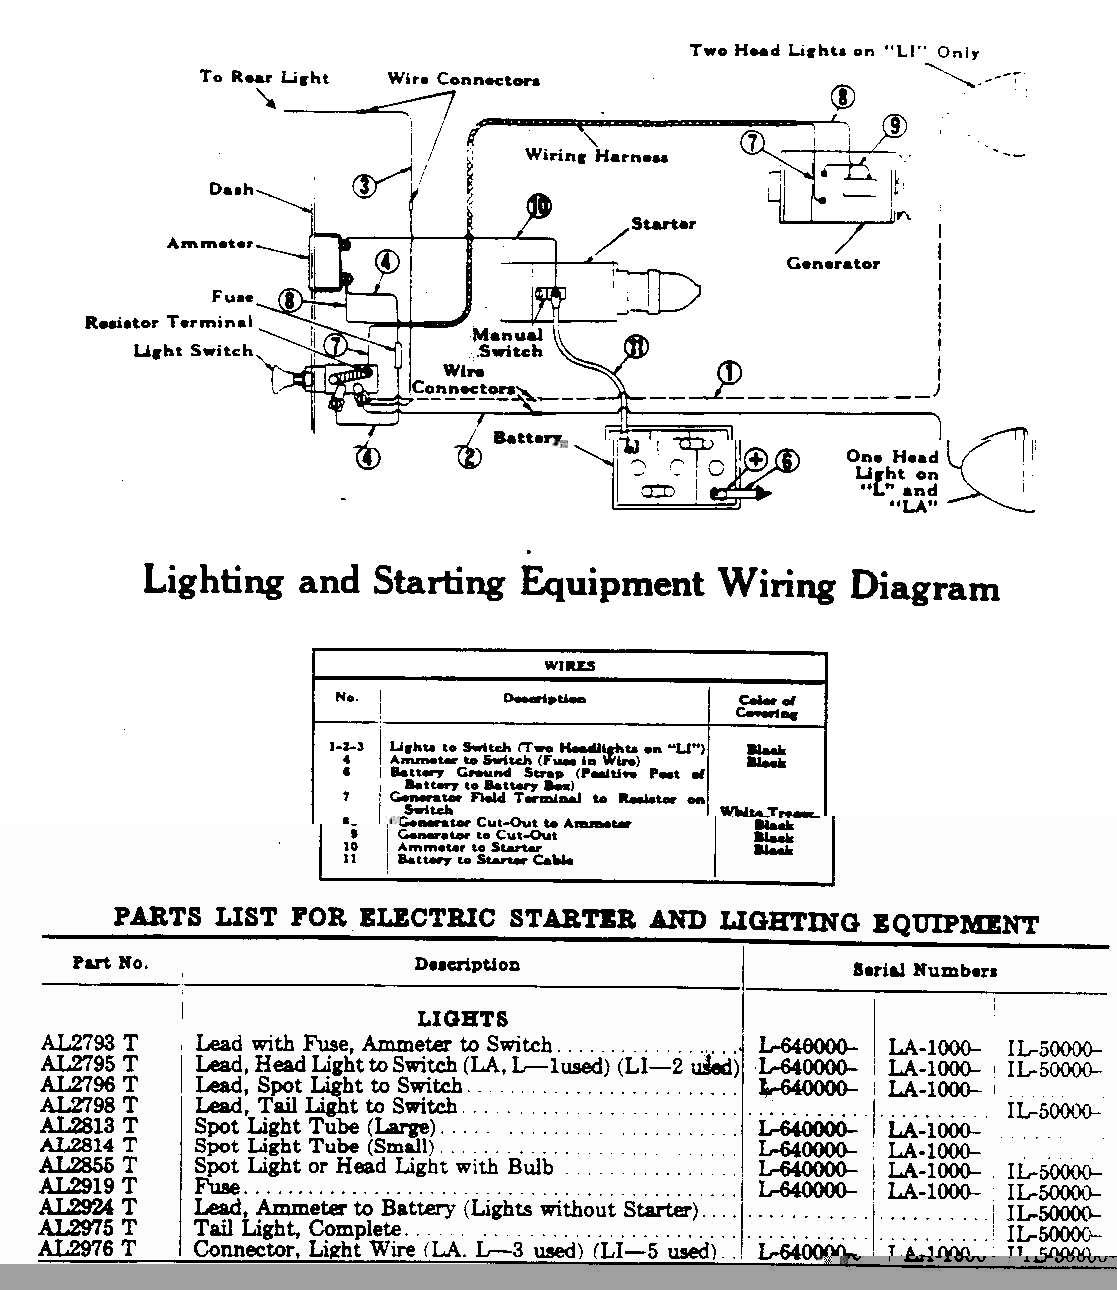 lwiring rusty acres ranch John Deere Ignition Wiring Diagram at creativeand.co